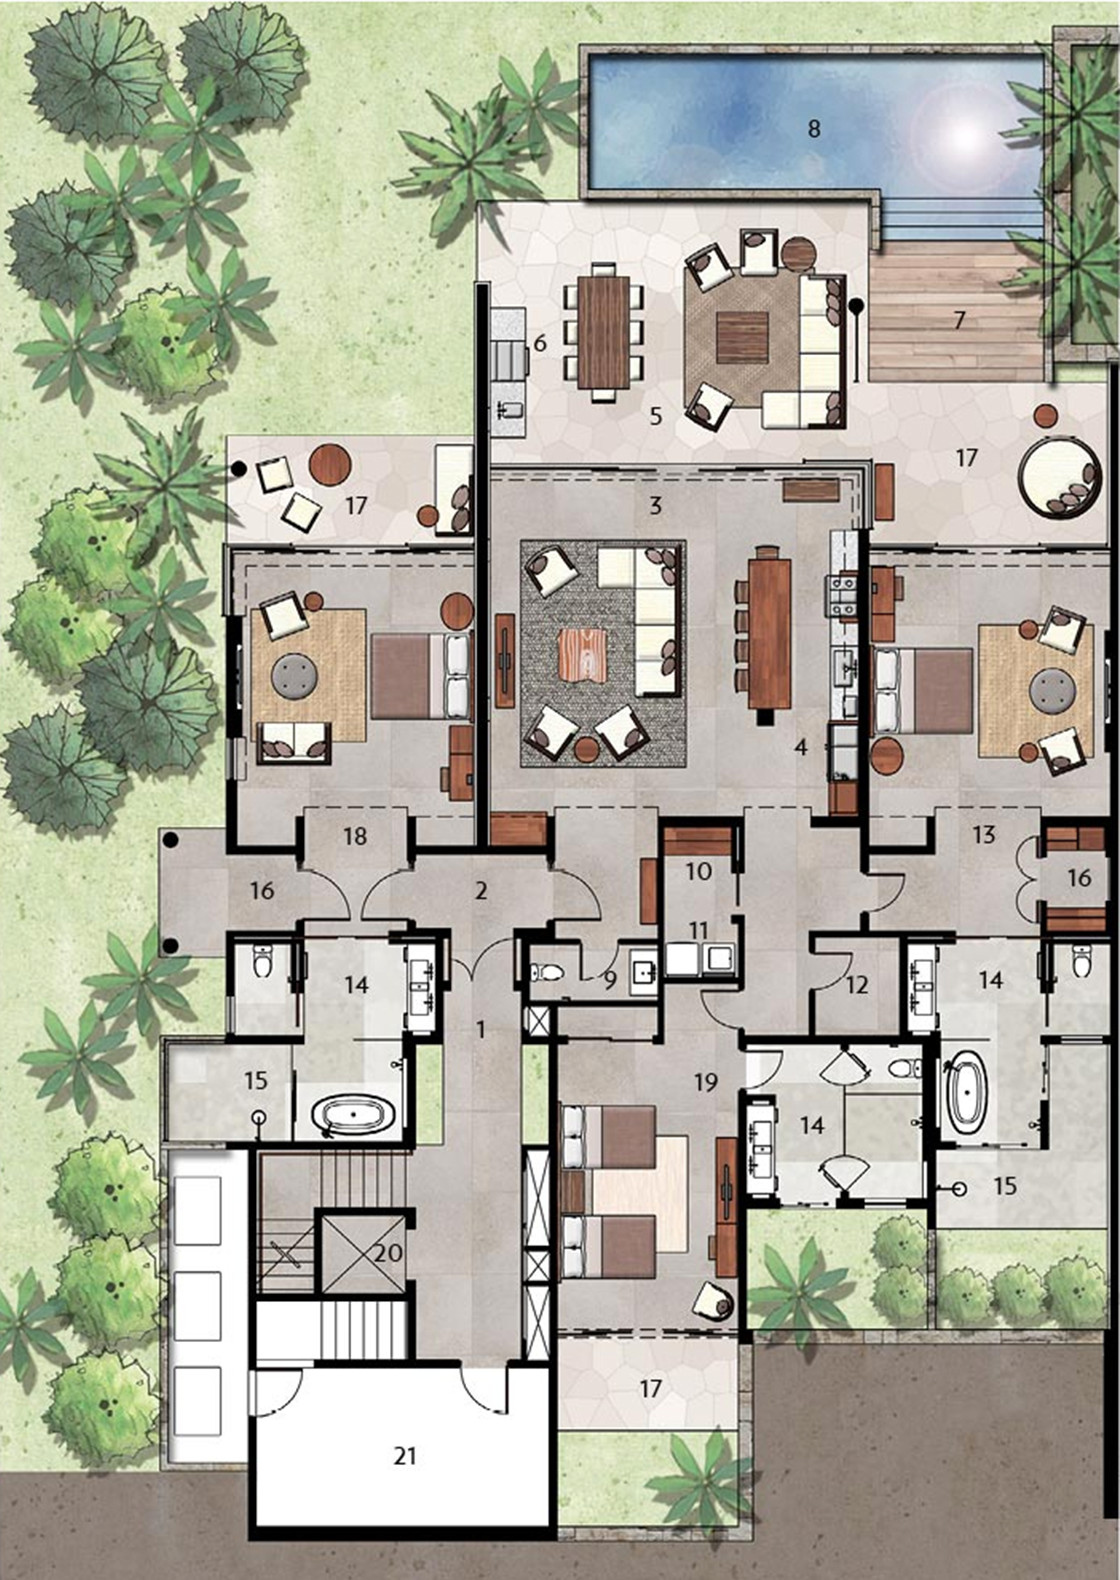 2 Storey House Floor Plan Los Cabos Luxury Villas Floor Plans Chileno Bay Resort